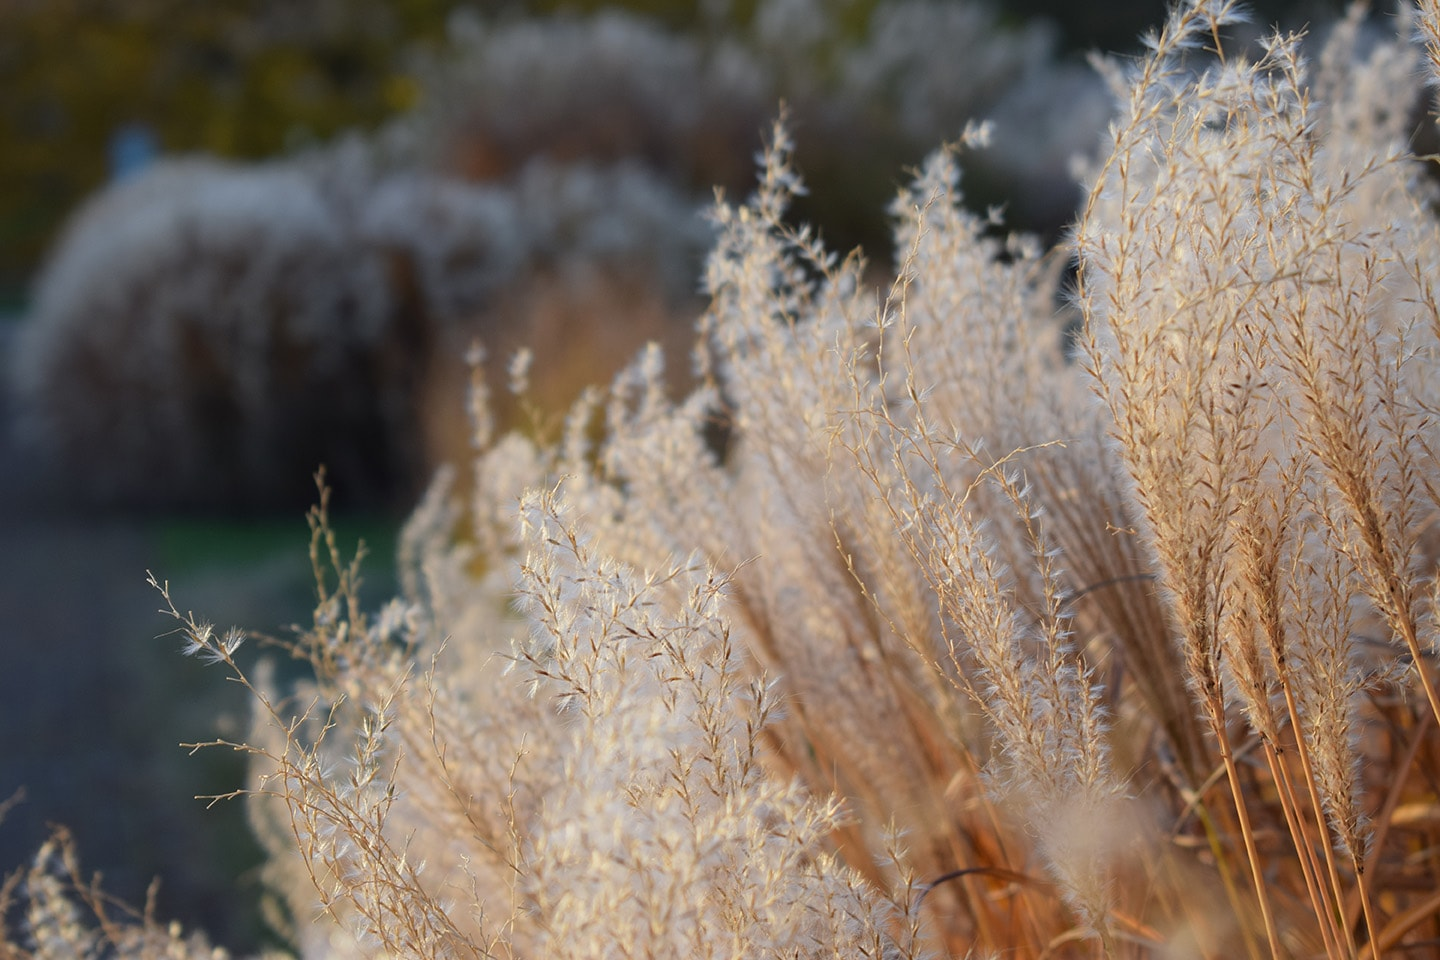 Close-up of grasses in the Grass Garden at Kew